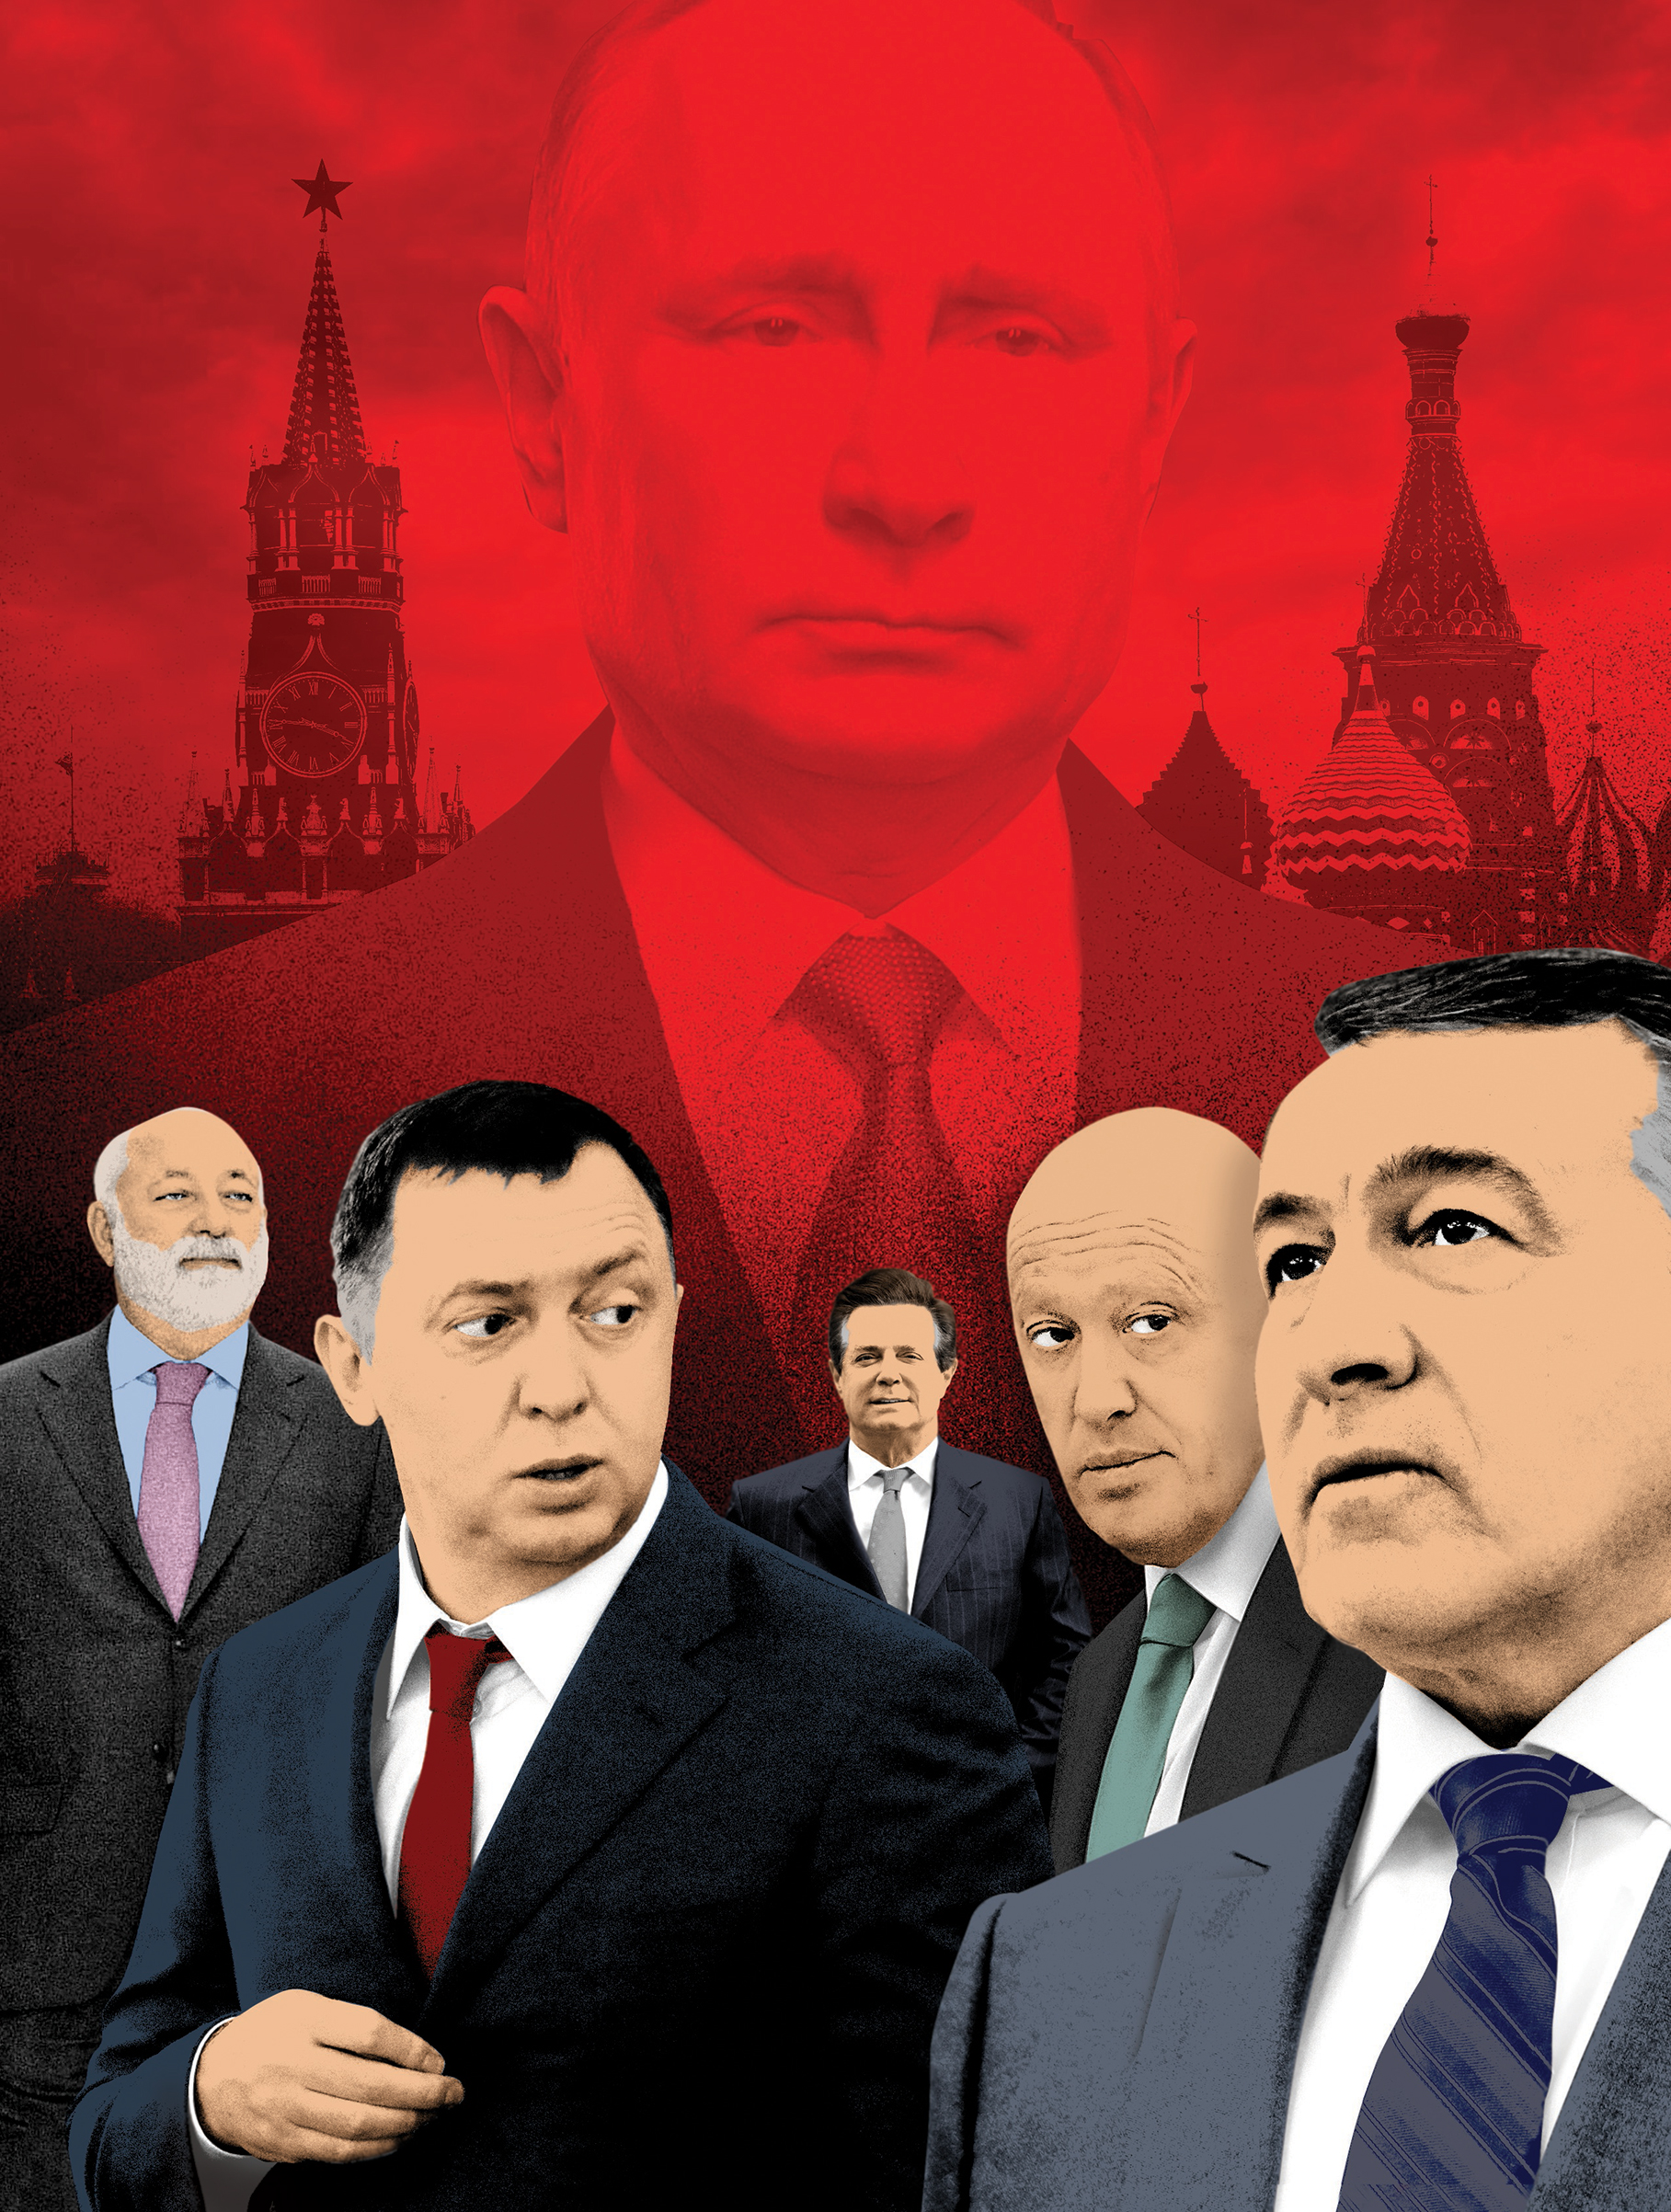 Putin relies on Russia's richest men to project power. From left: ViktorVekselberg, Oleg Deripaska, Evgeny Prigozhin and Aras Agalarov. Paul Manafort, center, worked for Deripaska.